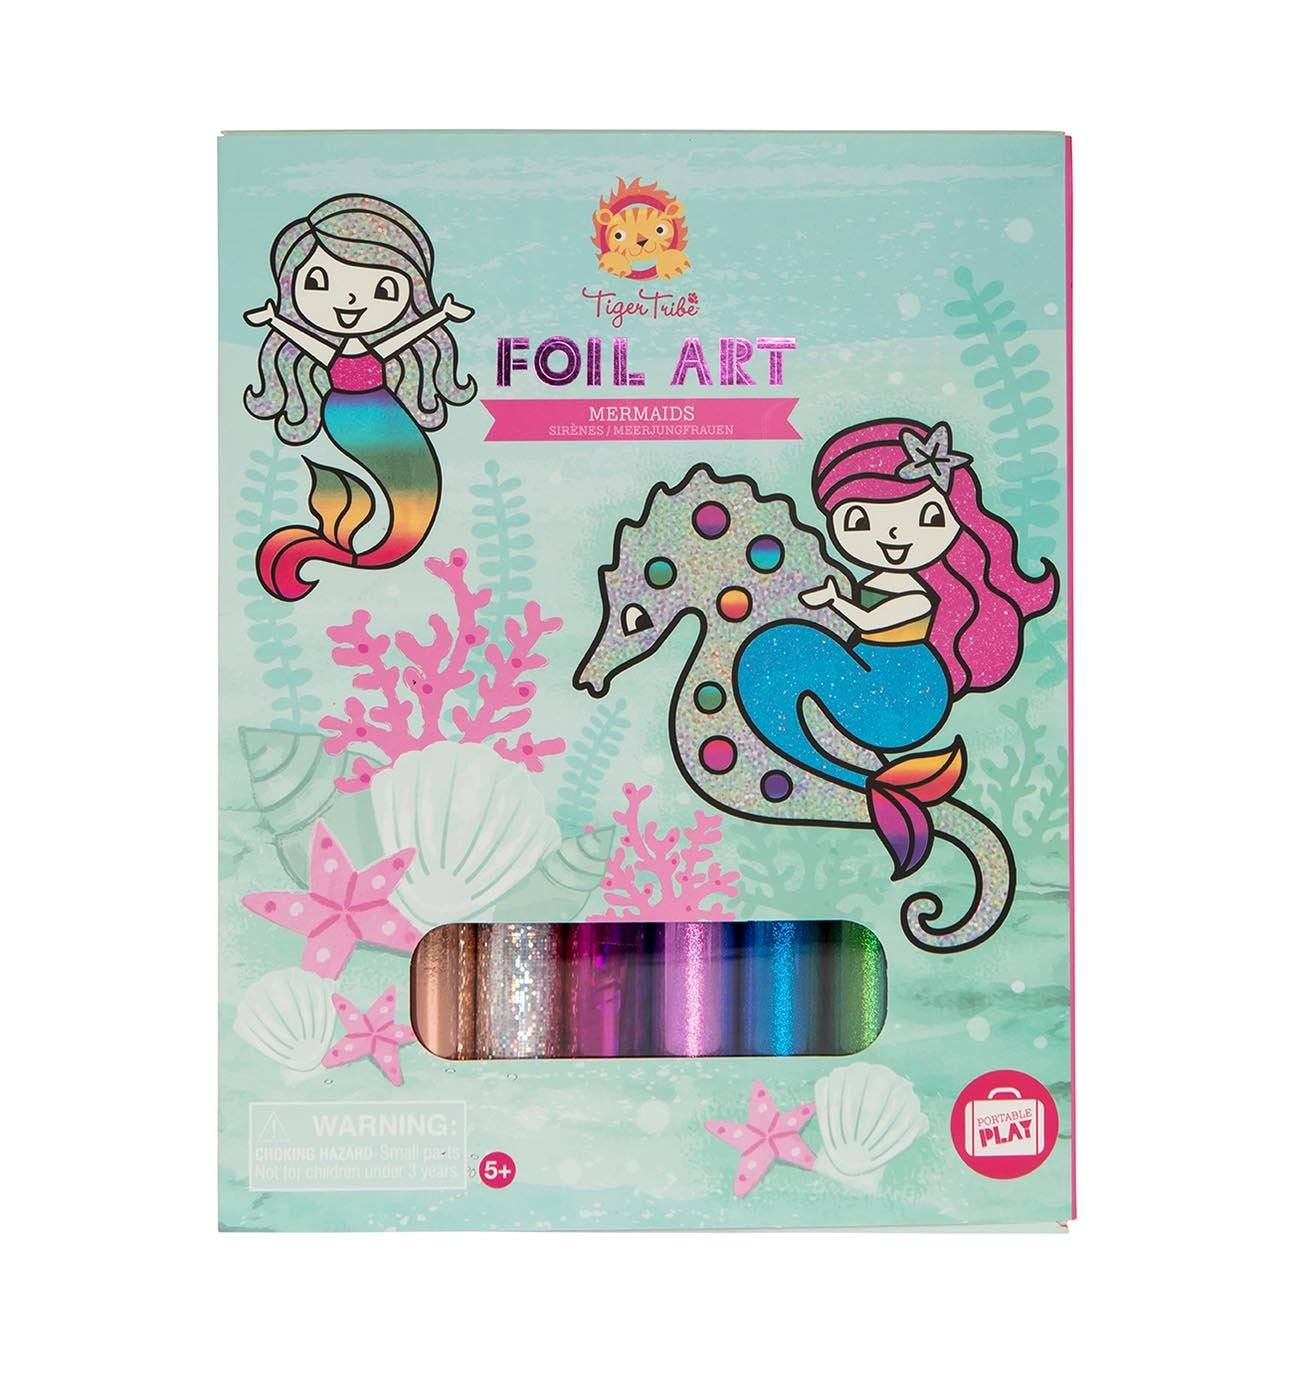 Foil Art (Mermaids)